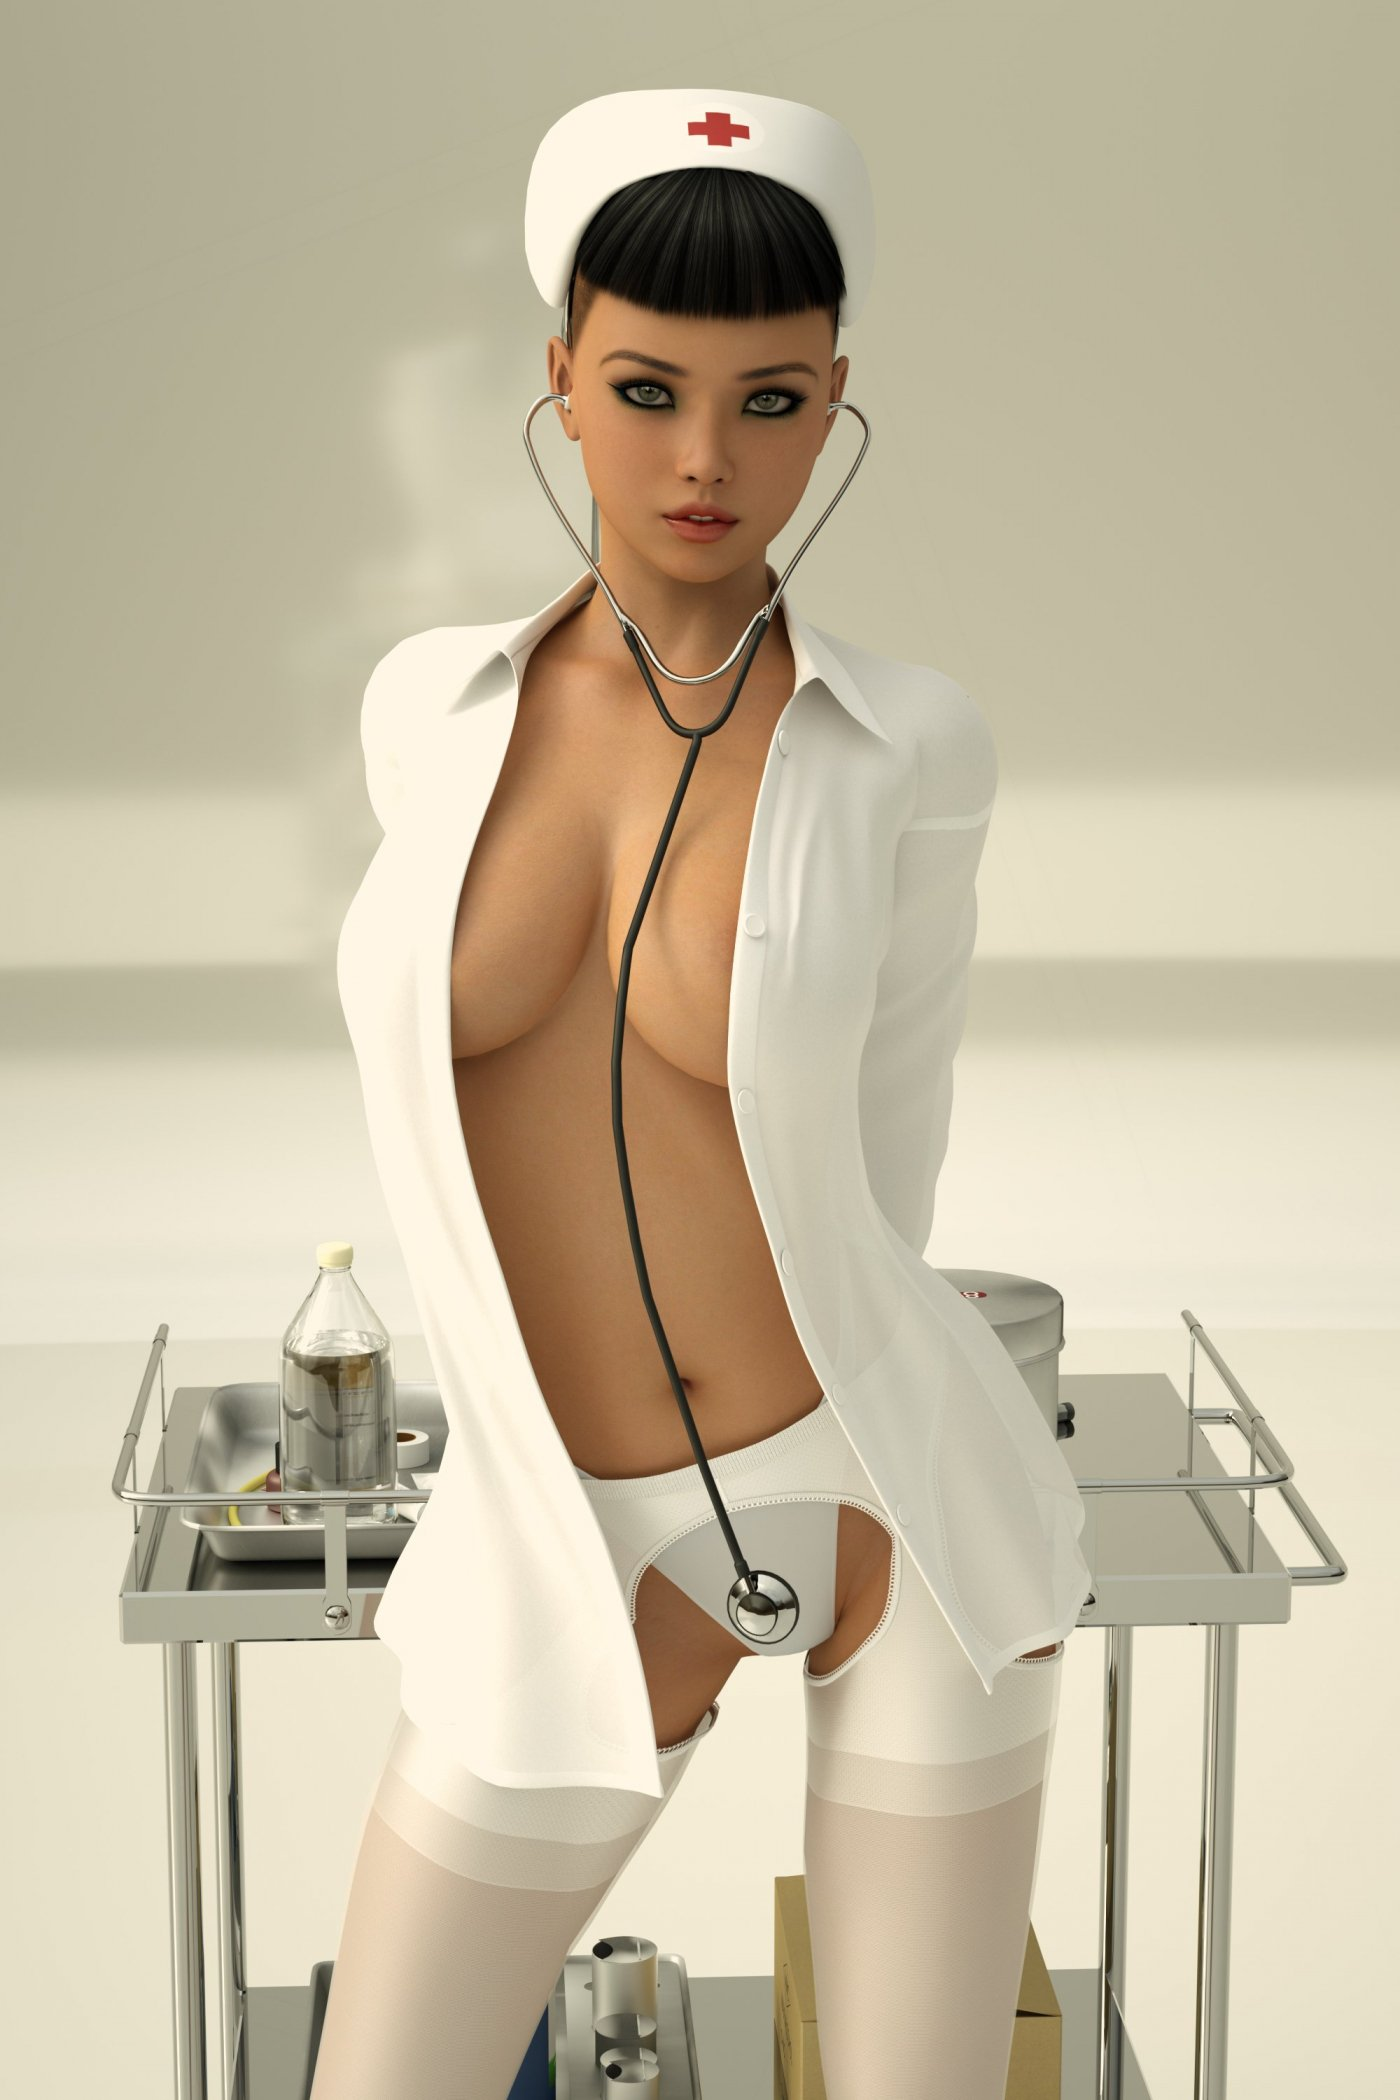 Female Nurses Nude